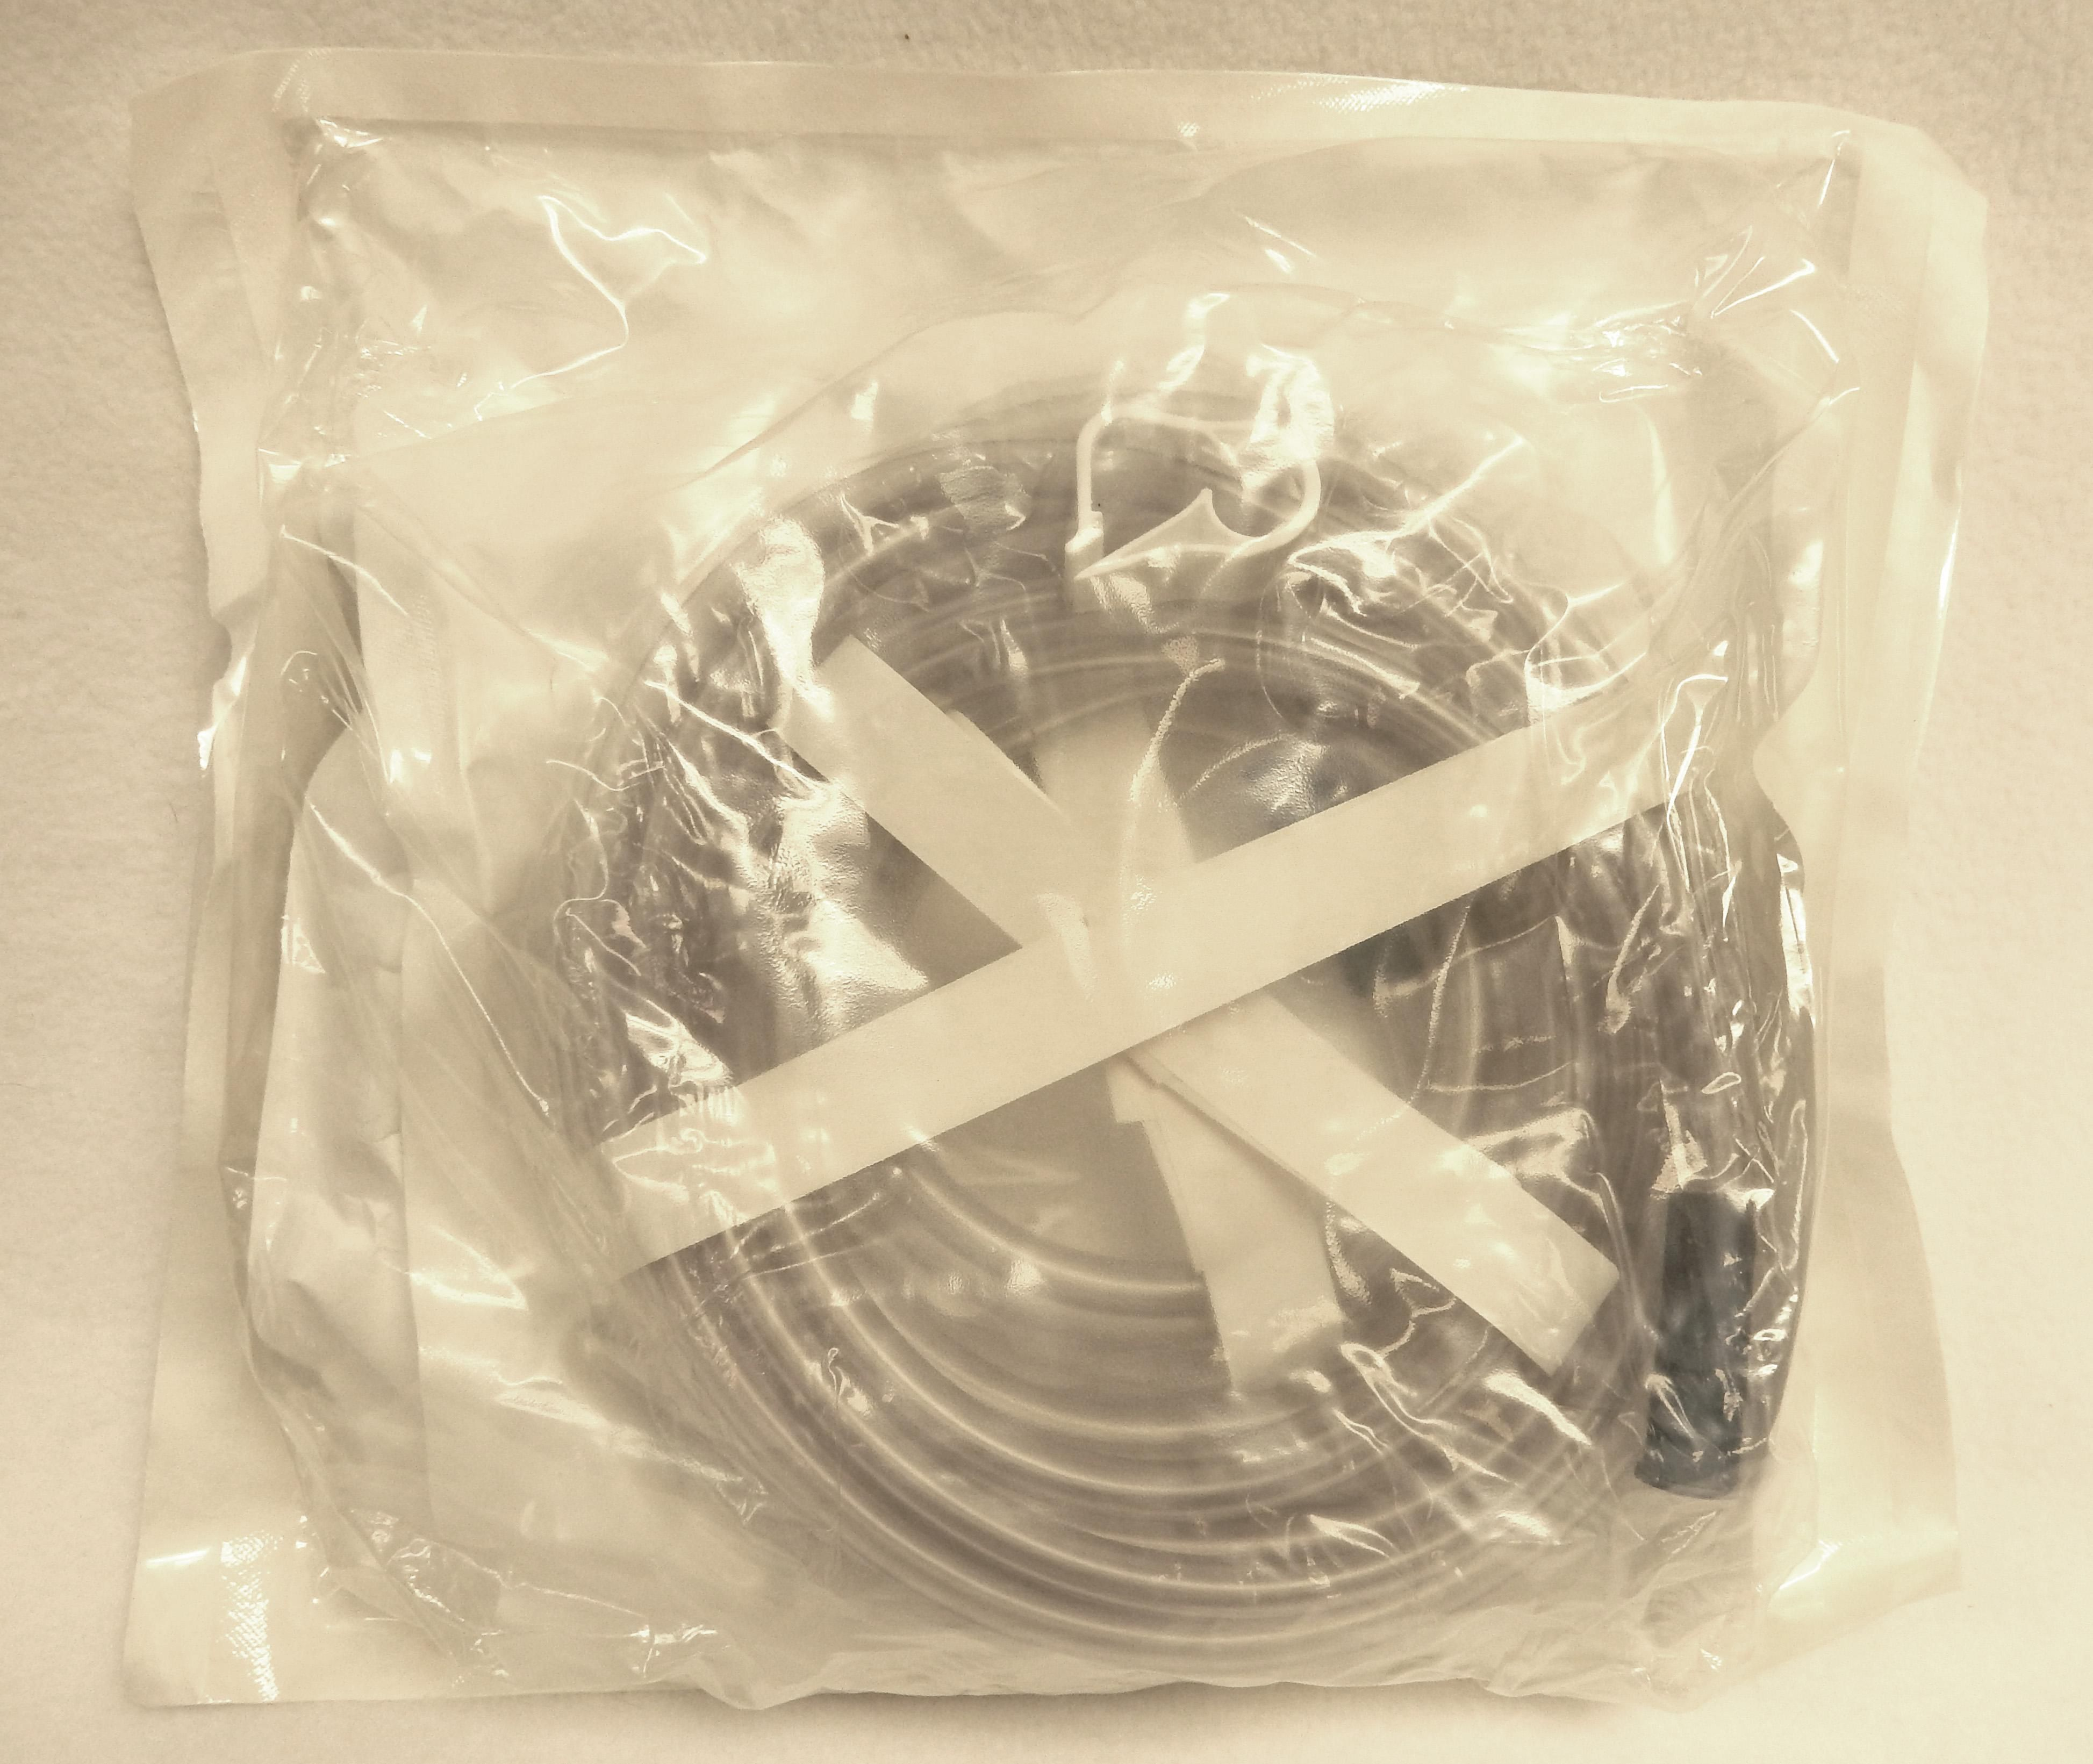 Stryker 502-200-000A Disposable Integrated Tubing Expired